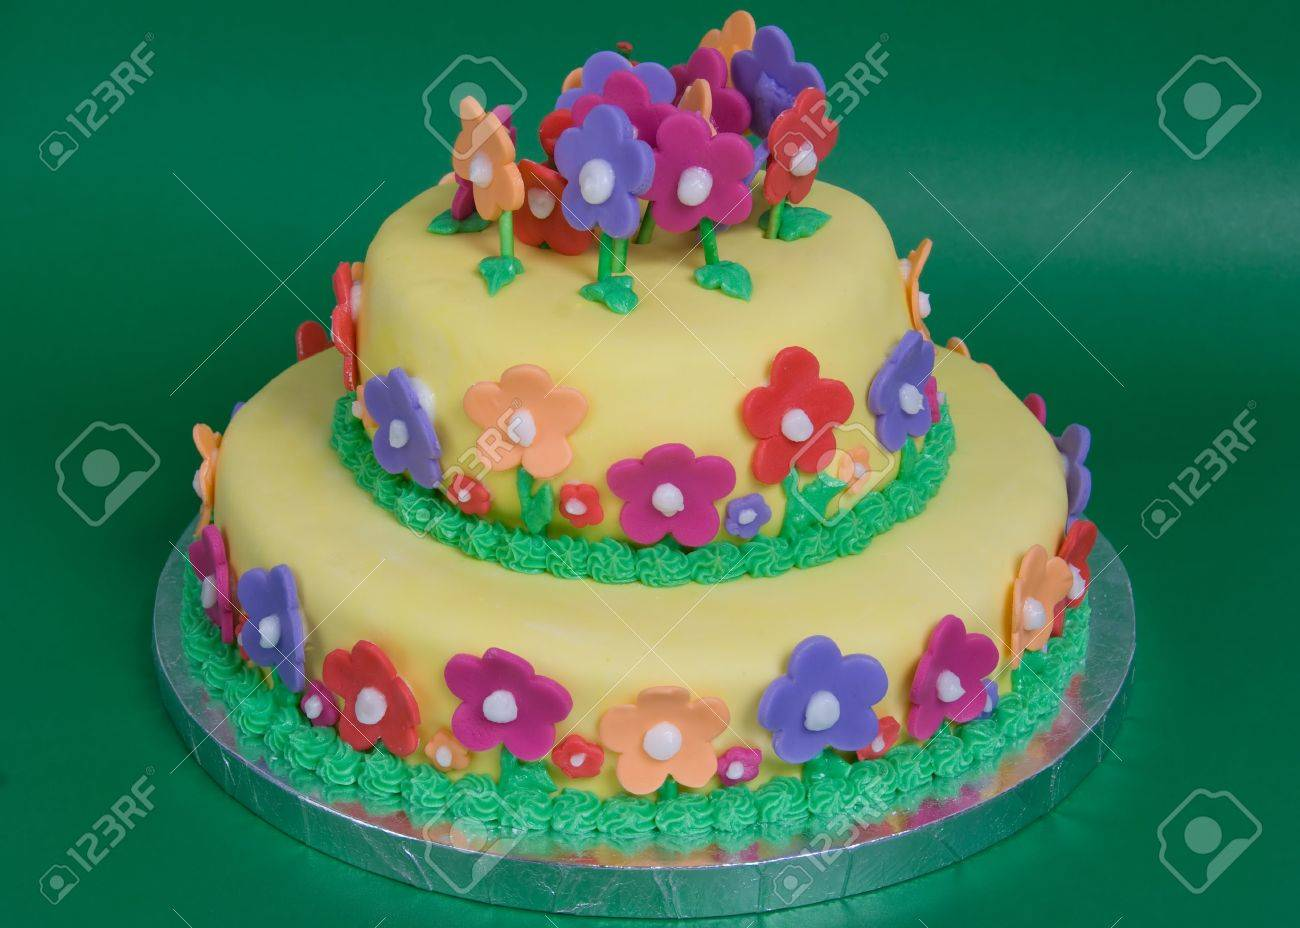 Spring Flower Cake Stock Photo Picture And Royalty Free Image